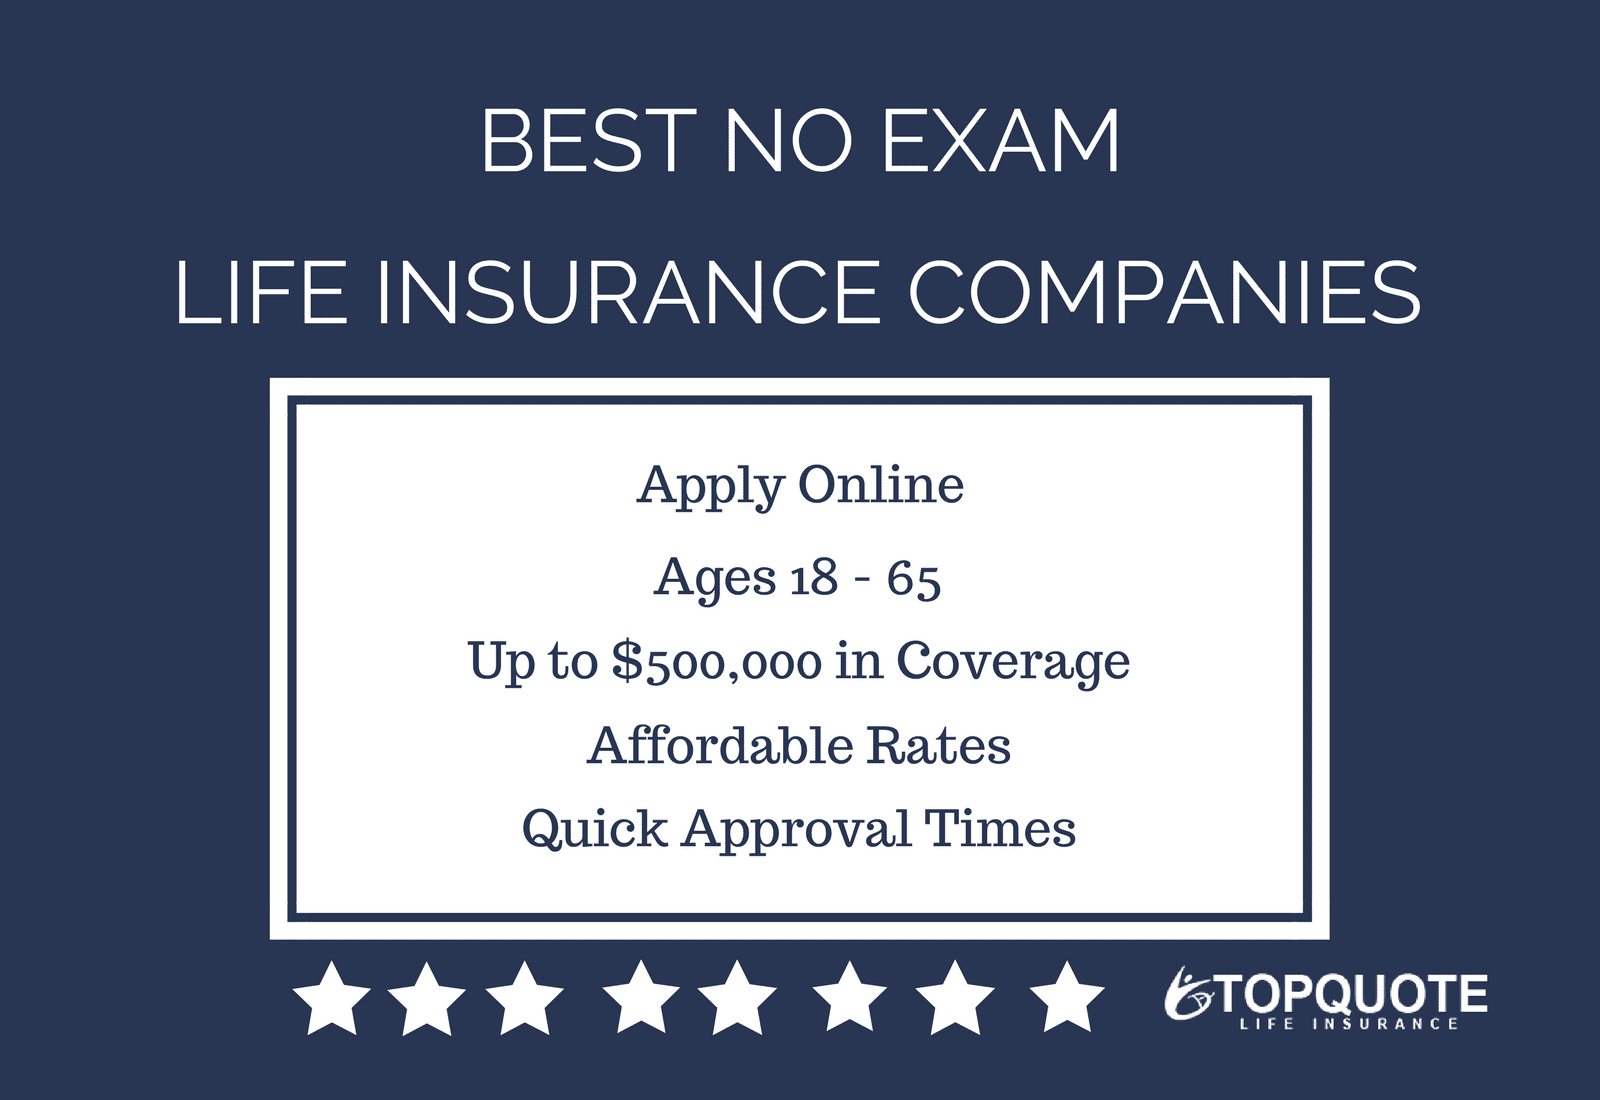 Affordable Life Insurance Quotes Online Endearing Best Instant Approval No Exam Life Insurance Quotes